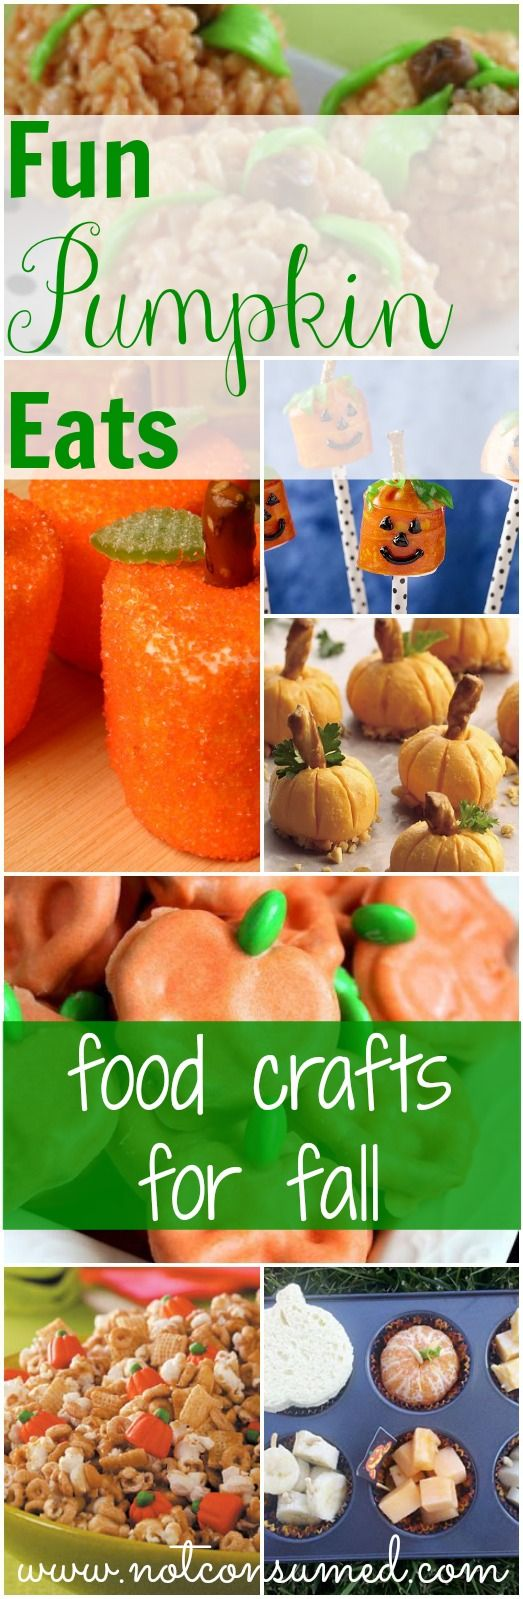 Don't you just love crafts that you can eat? If so, you'll love these fun pumpkin food crafts for fall.